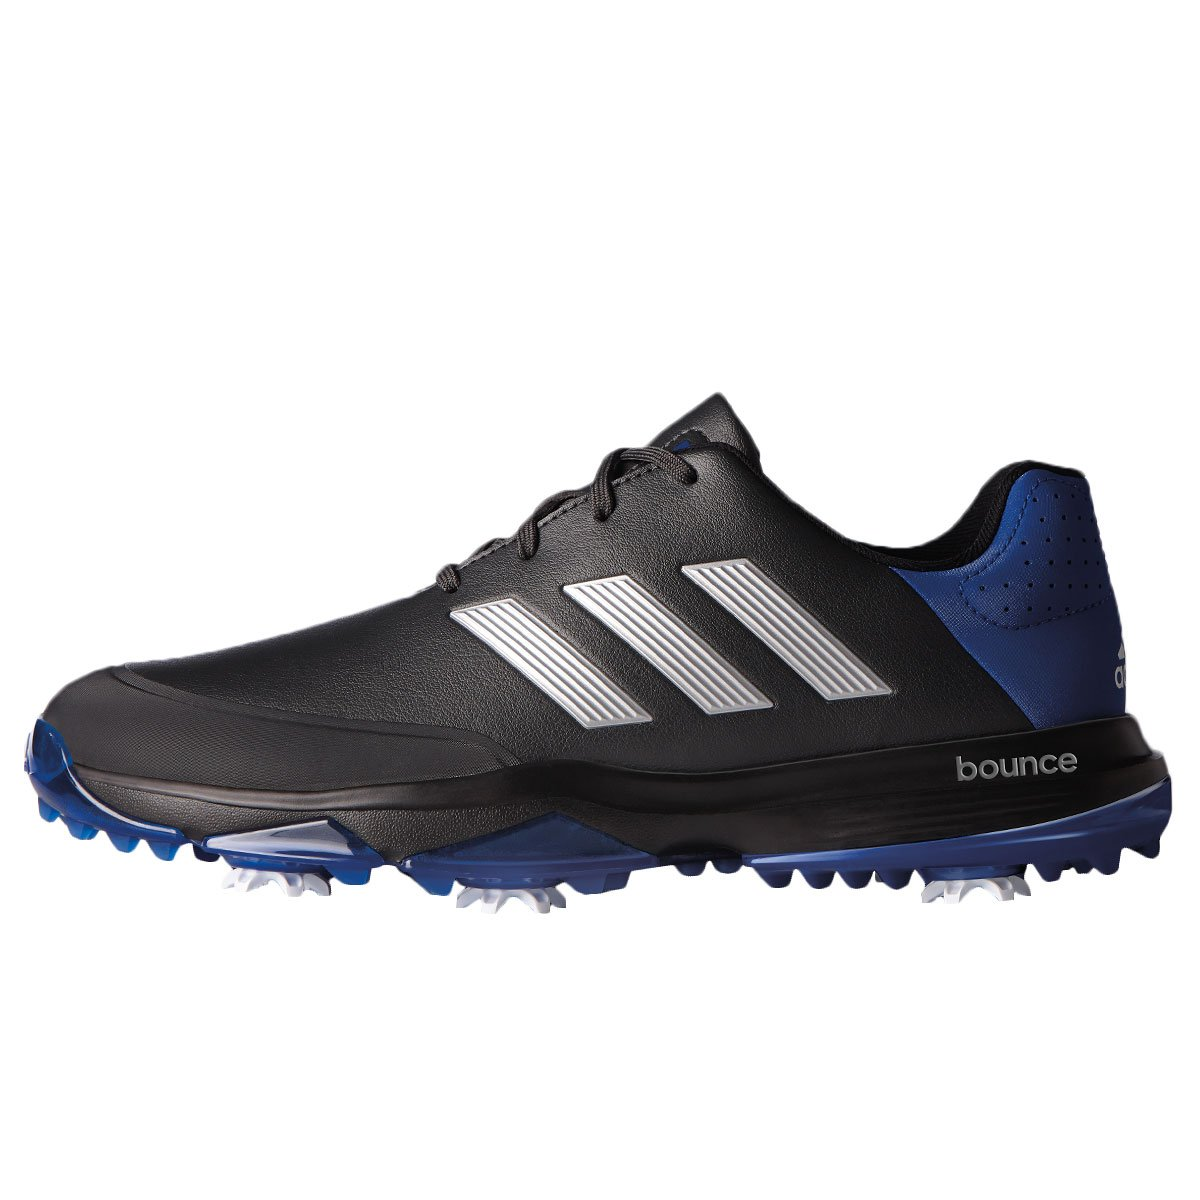 separation shoes 0f032 00dc7 adidas Adipower Bounce WD Scarpe da Golf, Uomo, NeroGrigioBlu, 42 23  Amazon.it Sport e tempo libero